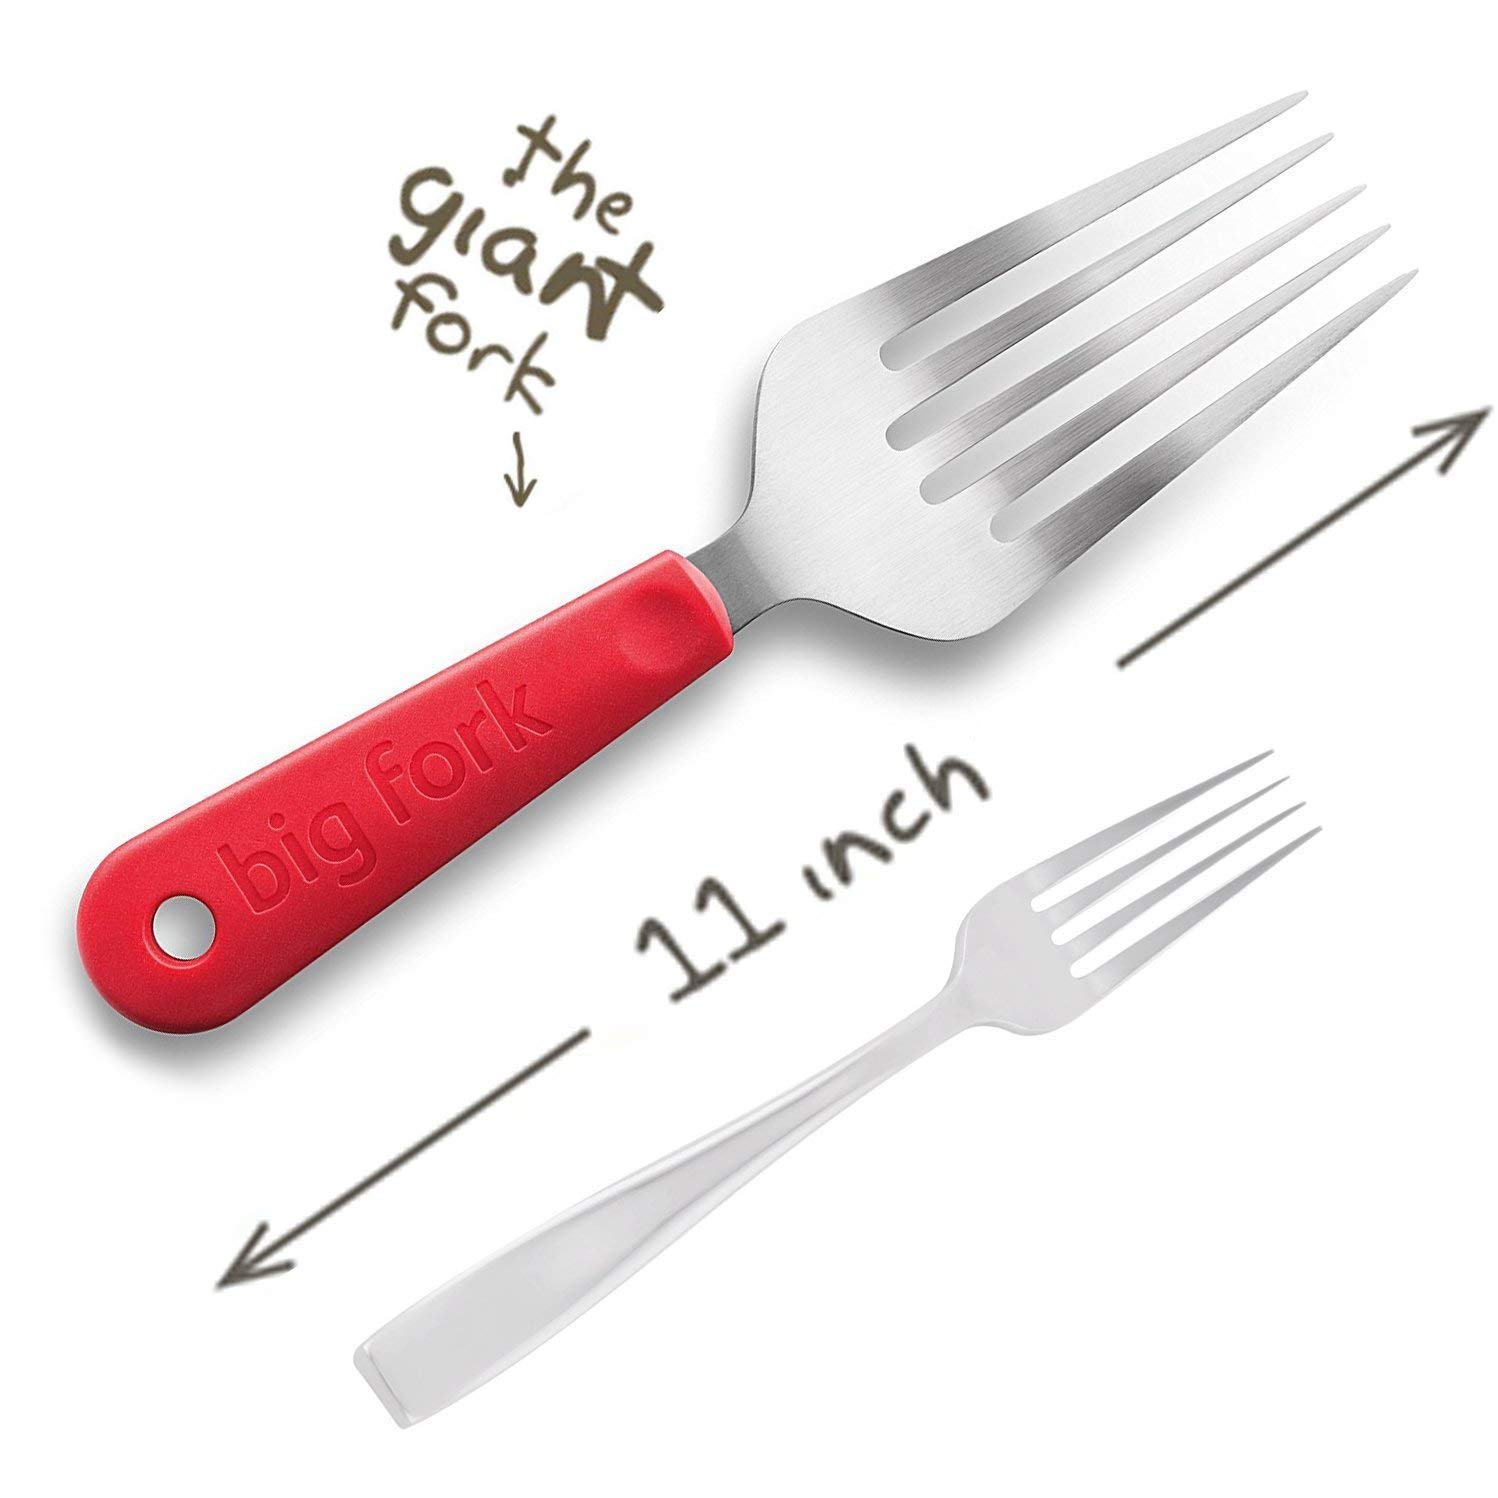 Big Fork, Large Cooking Fork BBQ & Grilling Tool Salad and Spaghetti Server with Comfort Grip (Grey) NEW SODA BFV1GRY6